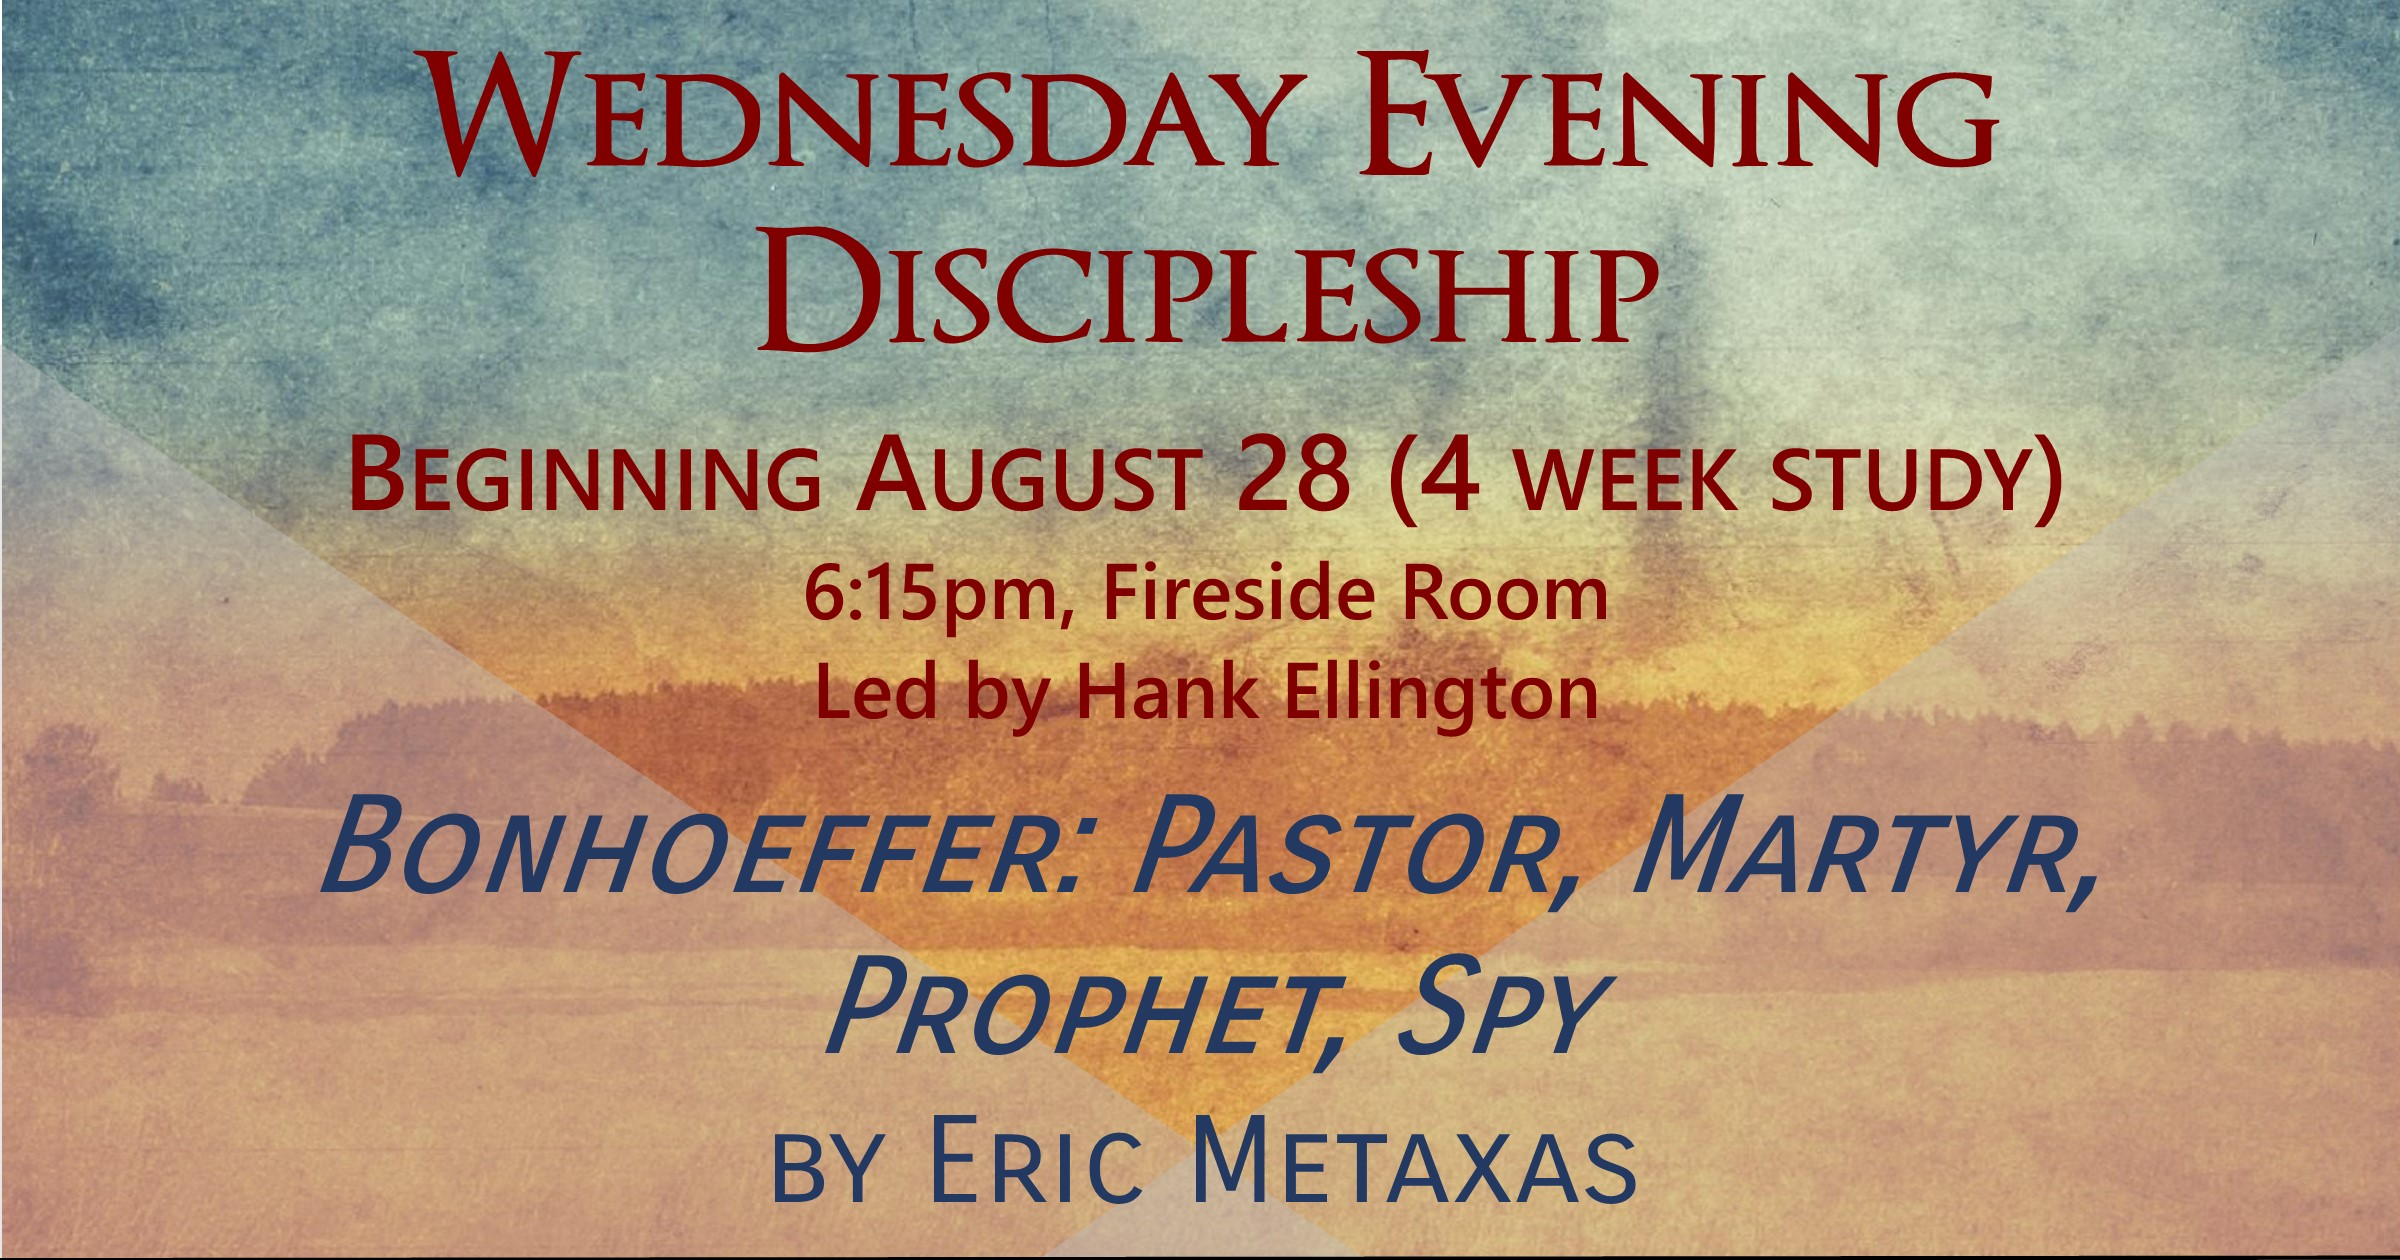 Wednesday evening discipleship Fall 2019 fb.jpg